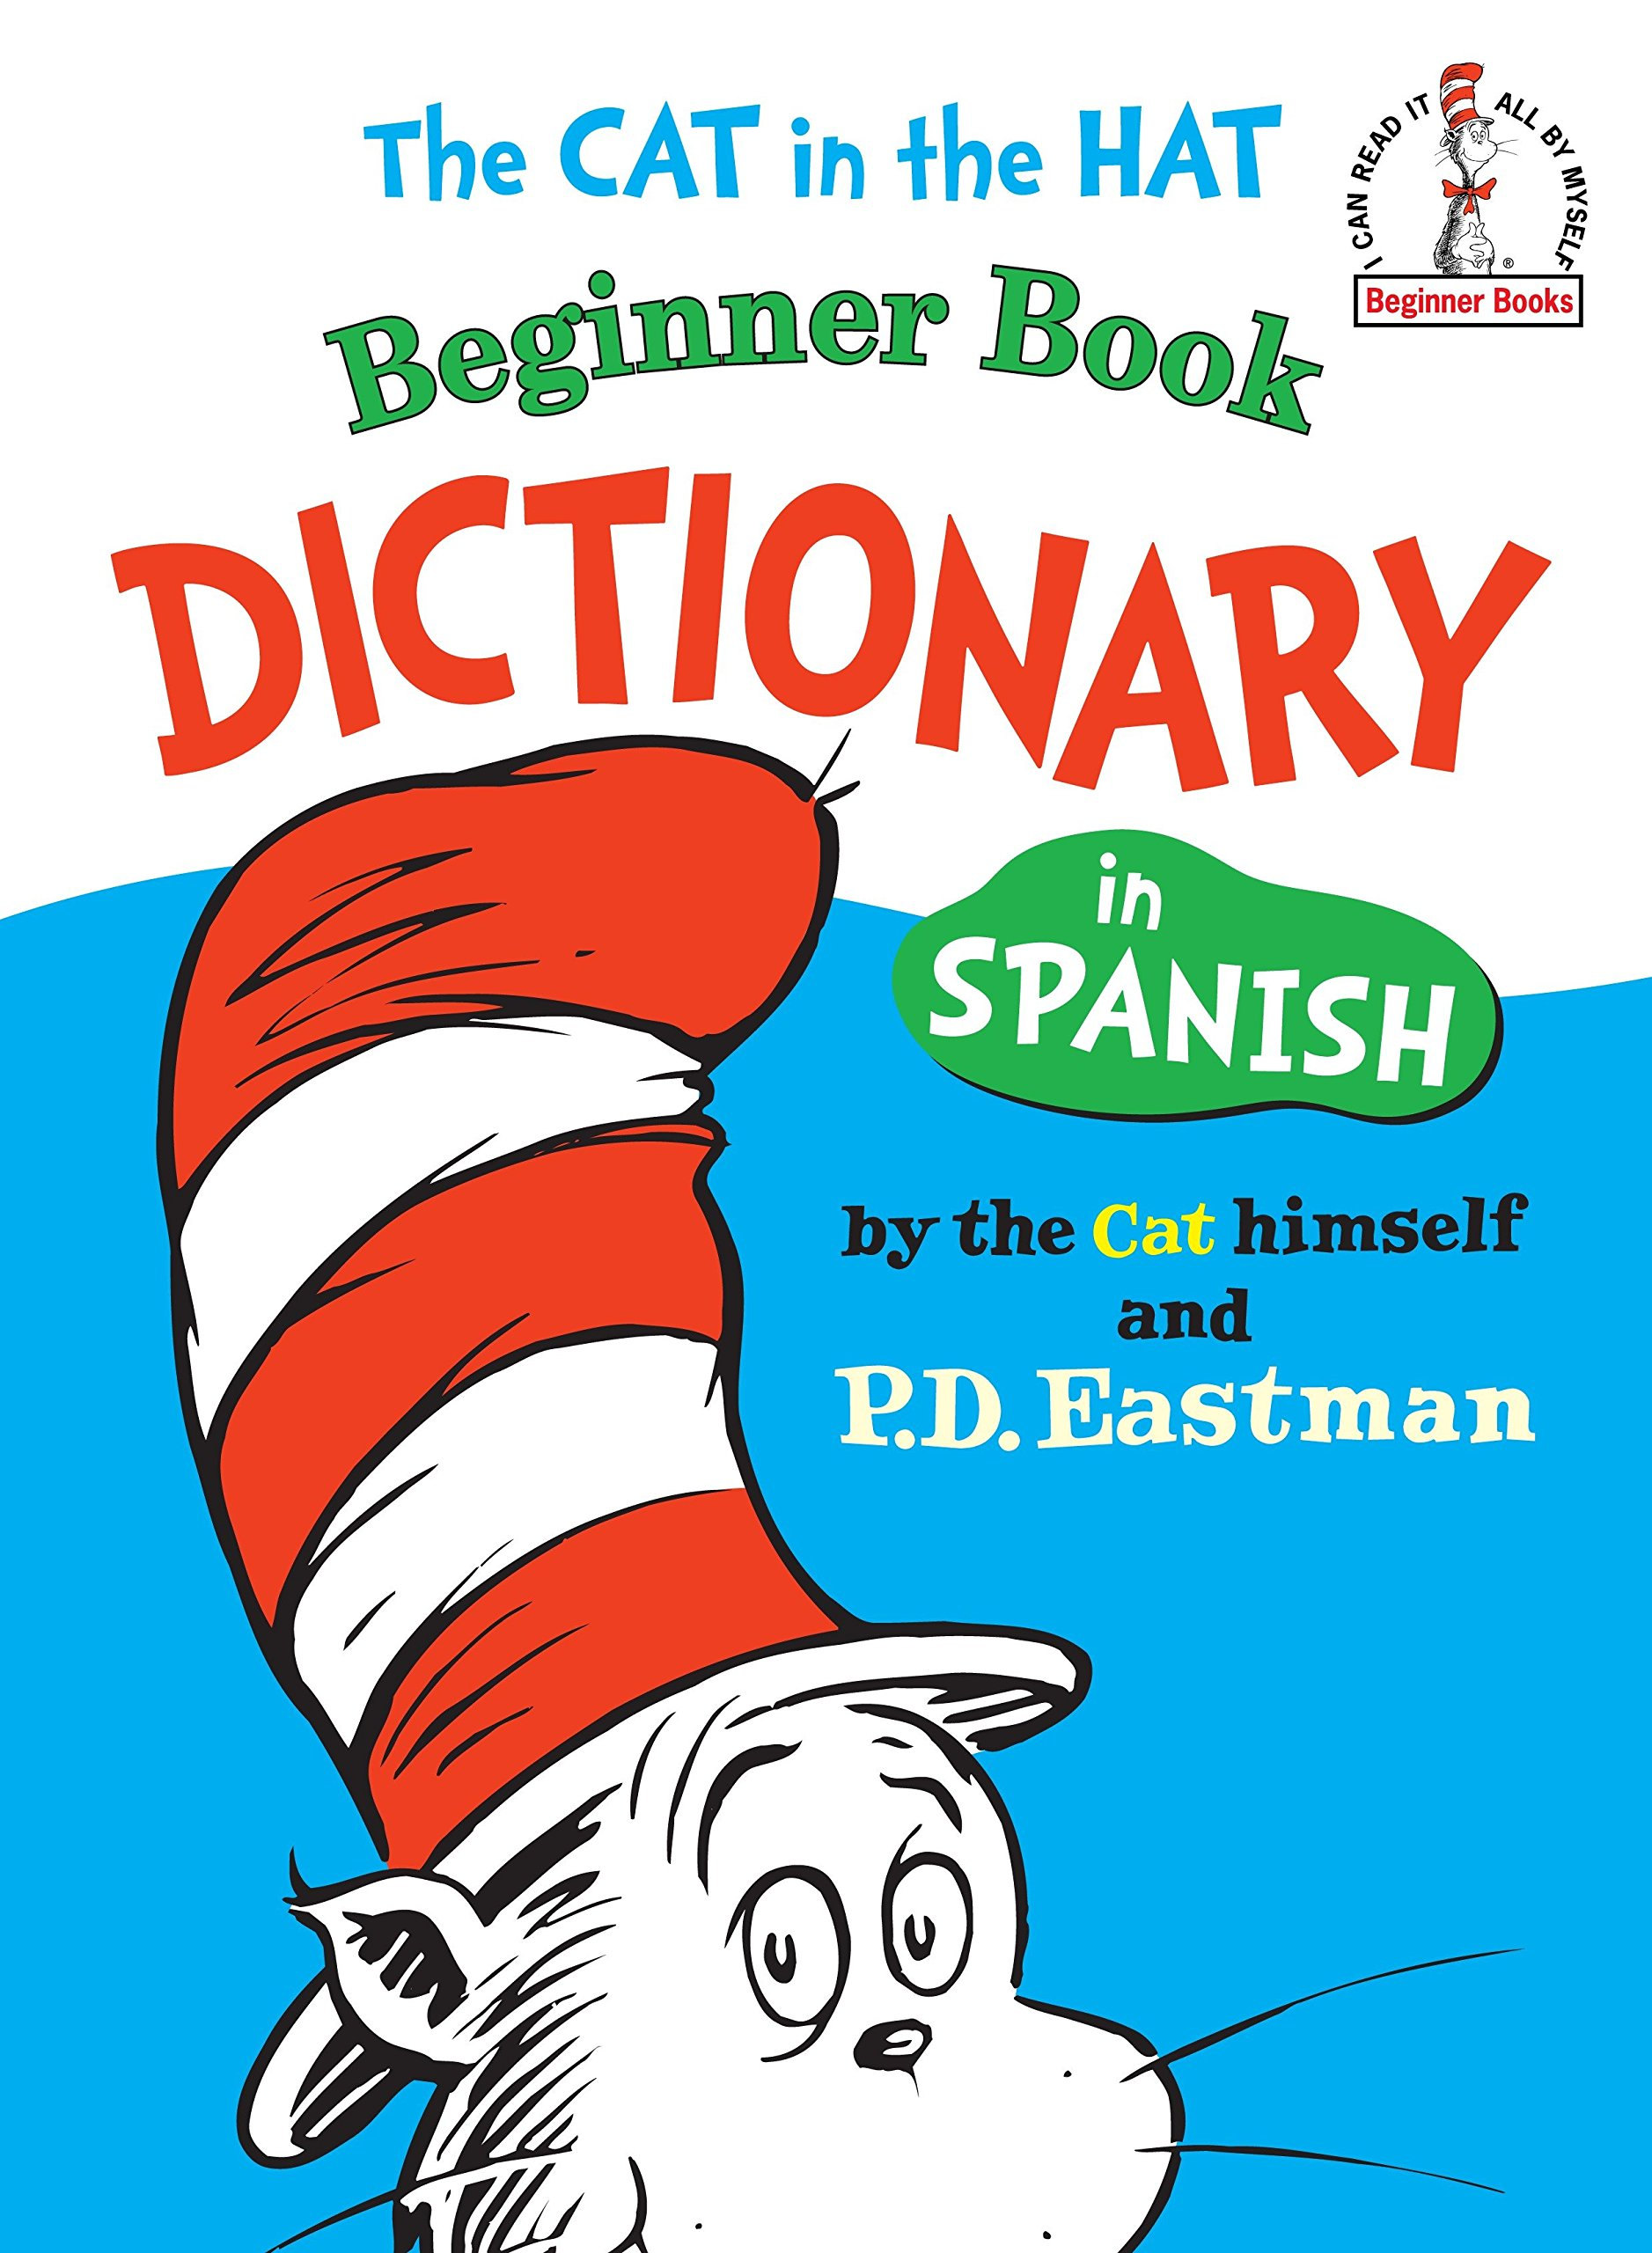 The Cat in the Hat Beginner Book Dictionary in Spanish (Beginner Books(R))  (Spanish Edition): P.D. Eastman: 9780394815428: Amazon.com: Books